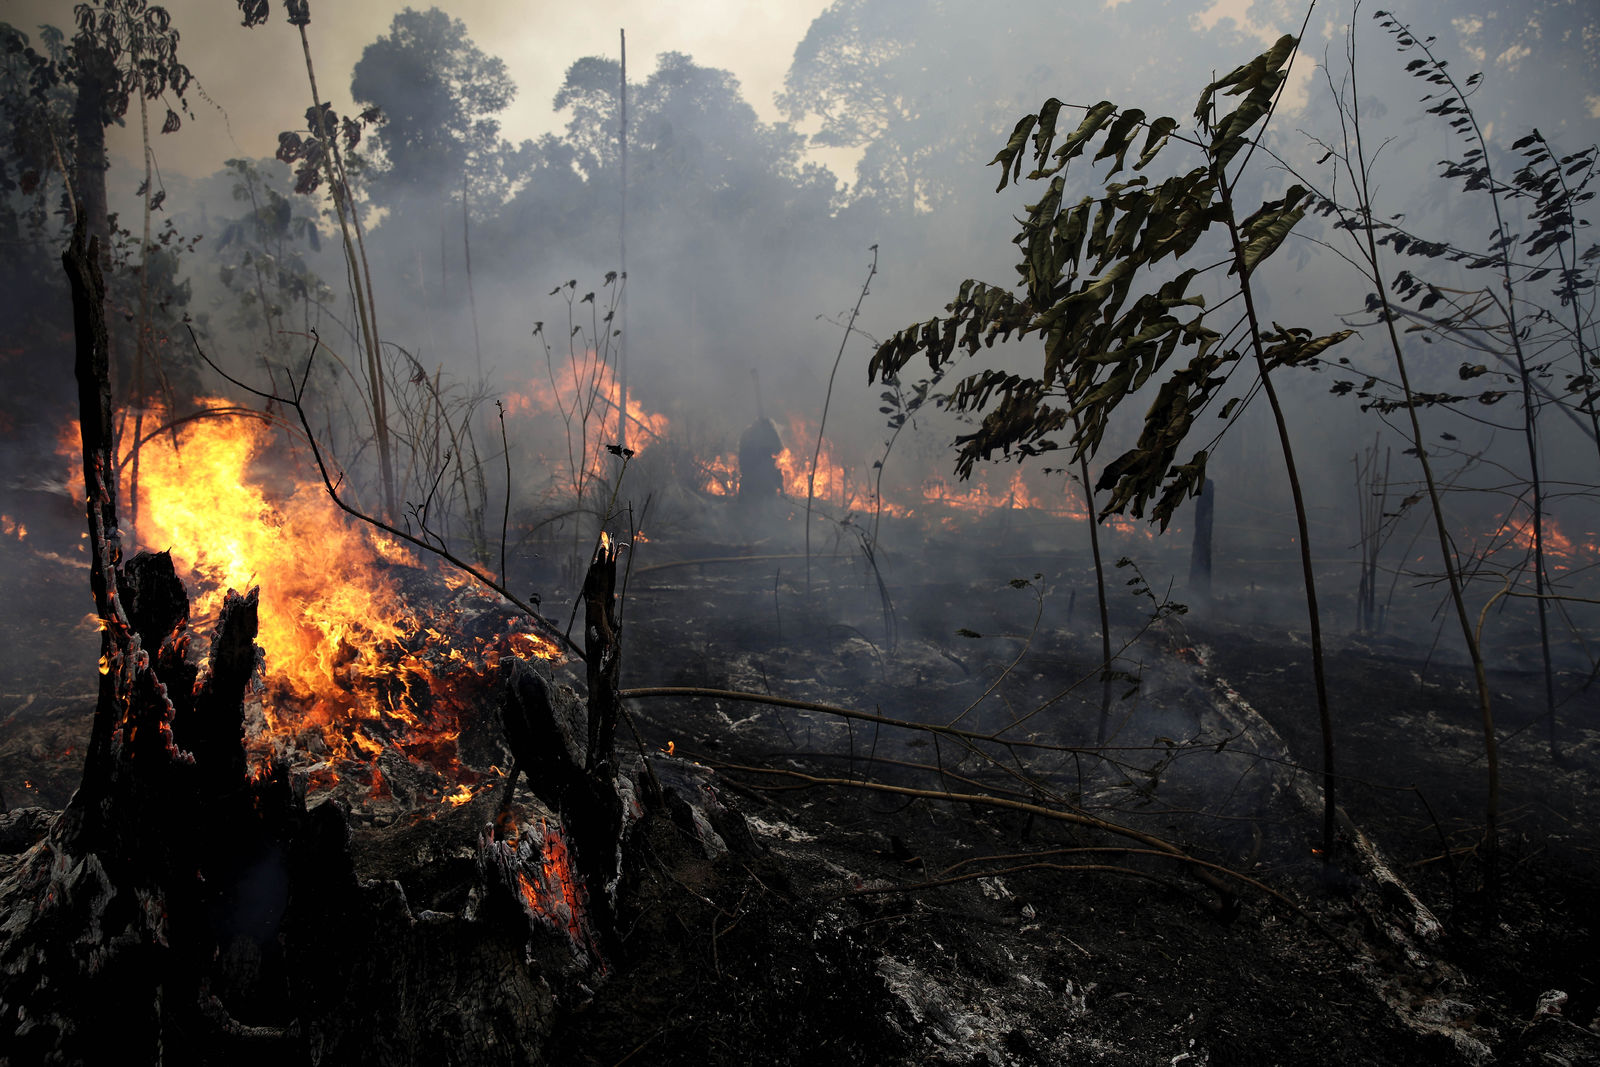 A fire burns trees and brush along the road to Jacunda National Forest, near the city of Porto Velho in the Vila Nova Samuel region which is part of Brazil's Amazon, Monday, Aug. 26, 2019. (AP Photo/Eraldo Peres)